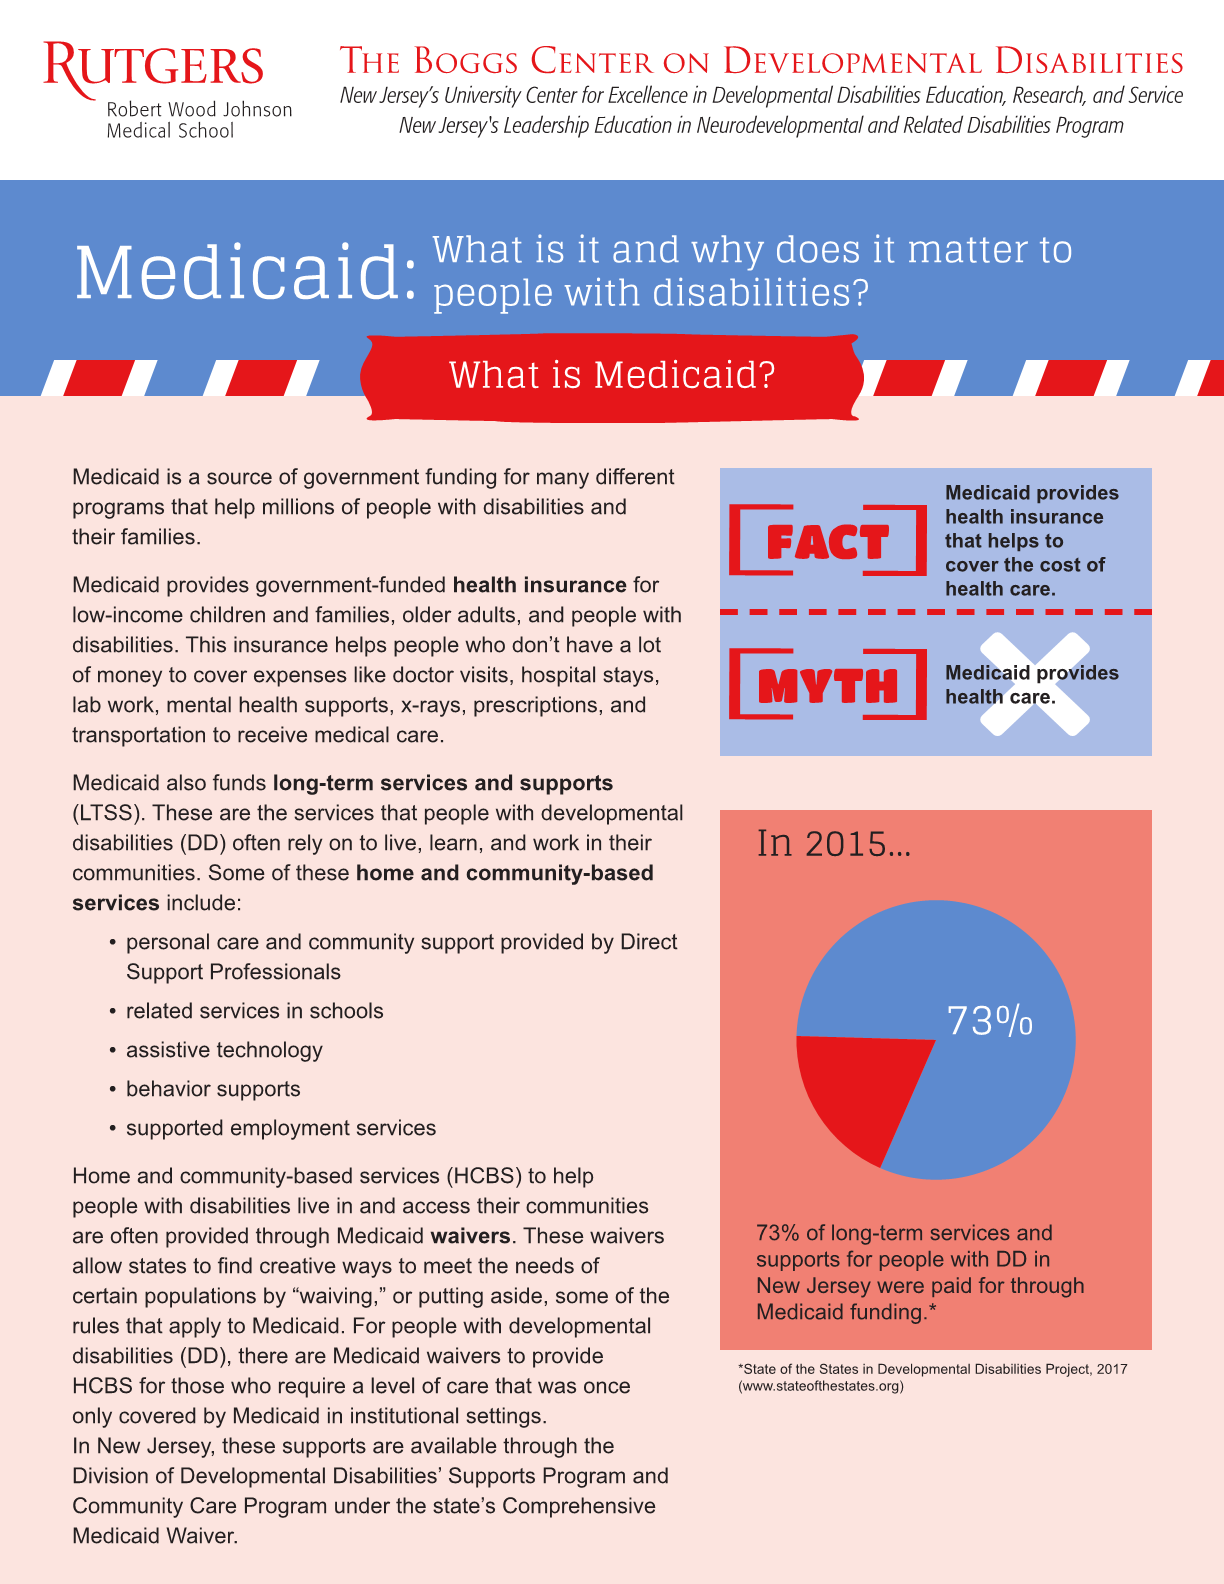 Medicaid: What Is It and Why Does It Matter to People with Disabilities?